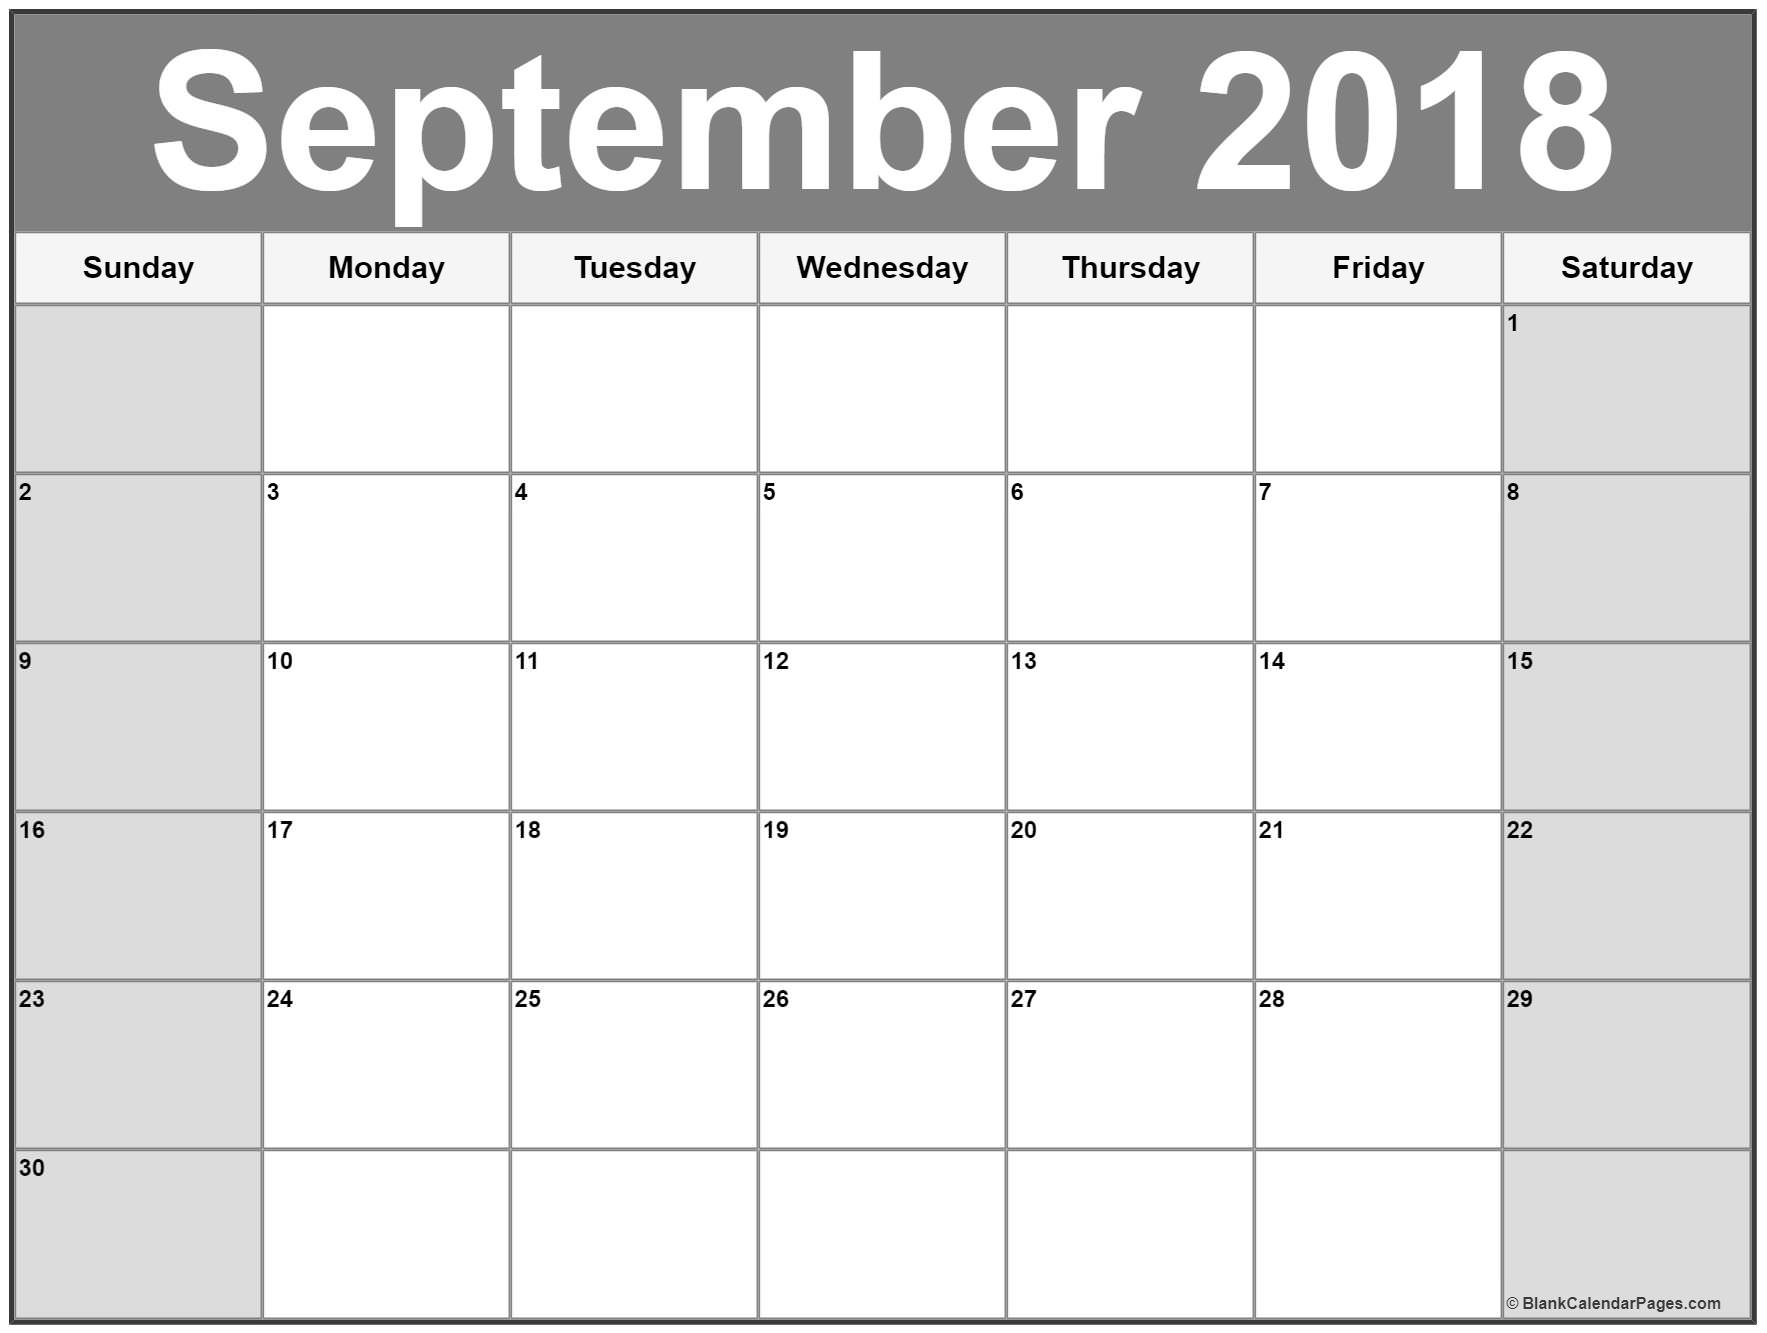 Monthly September Calendar 2018